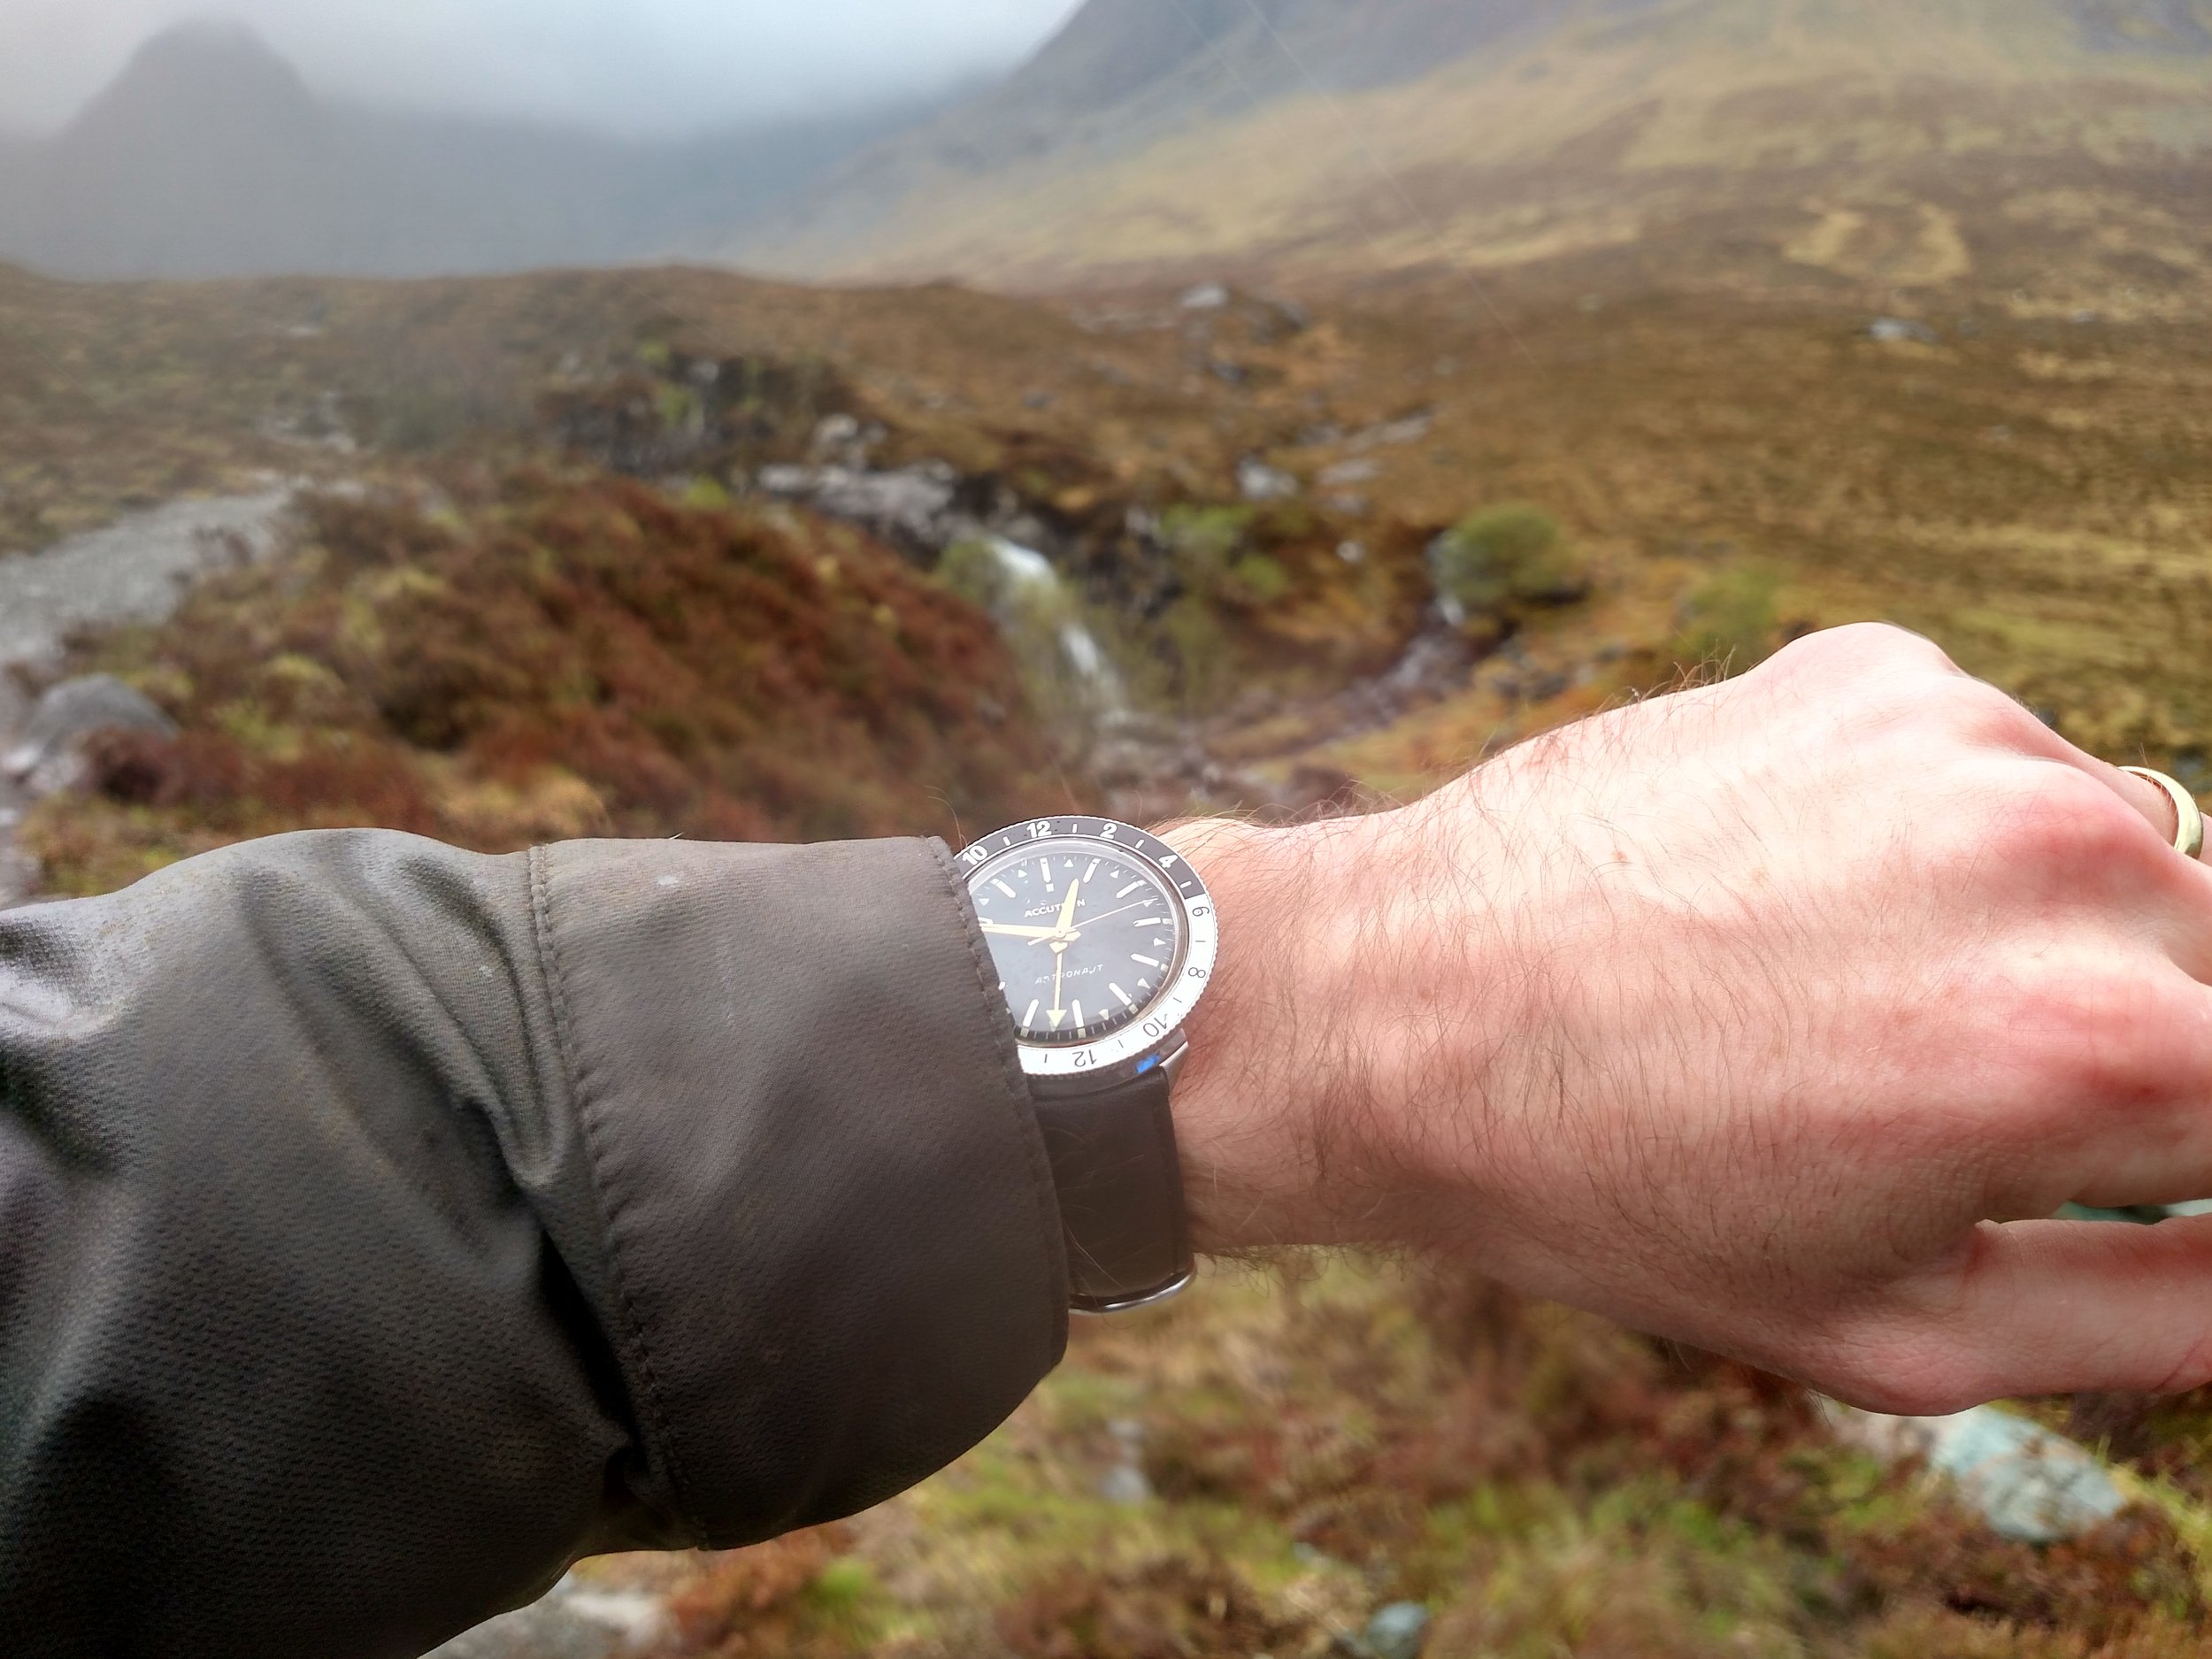 1968 Bulova Accutron Astronaut 'T' at the Fairy Pools  Glen Brittle, Allt Coir' a' Mhadaidh rivier, Isle of Skye, Scotland